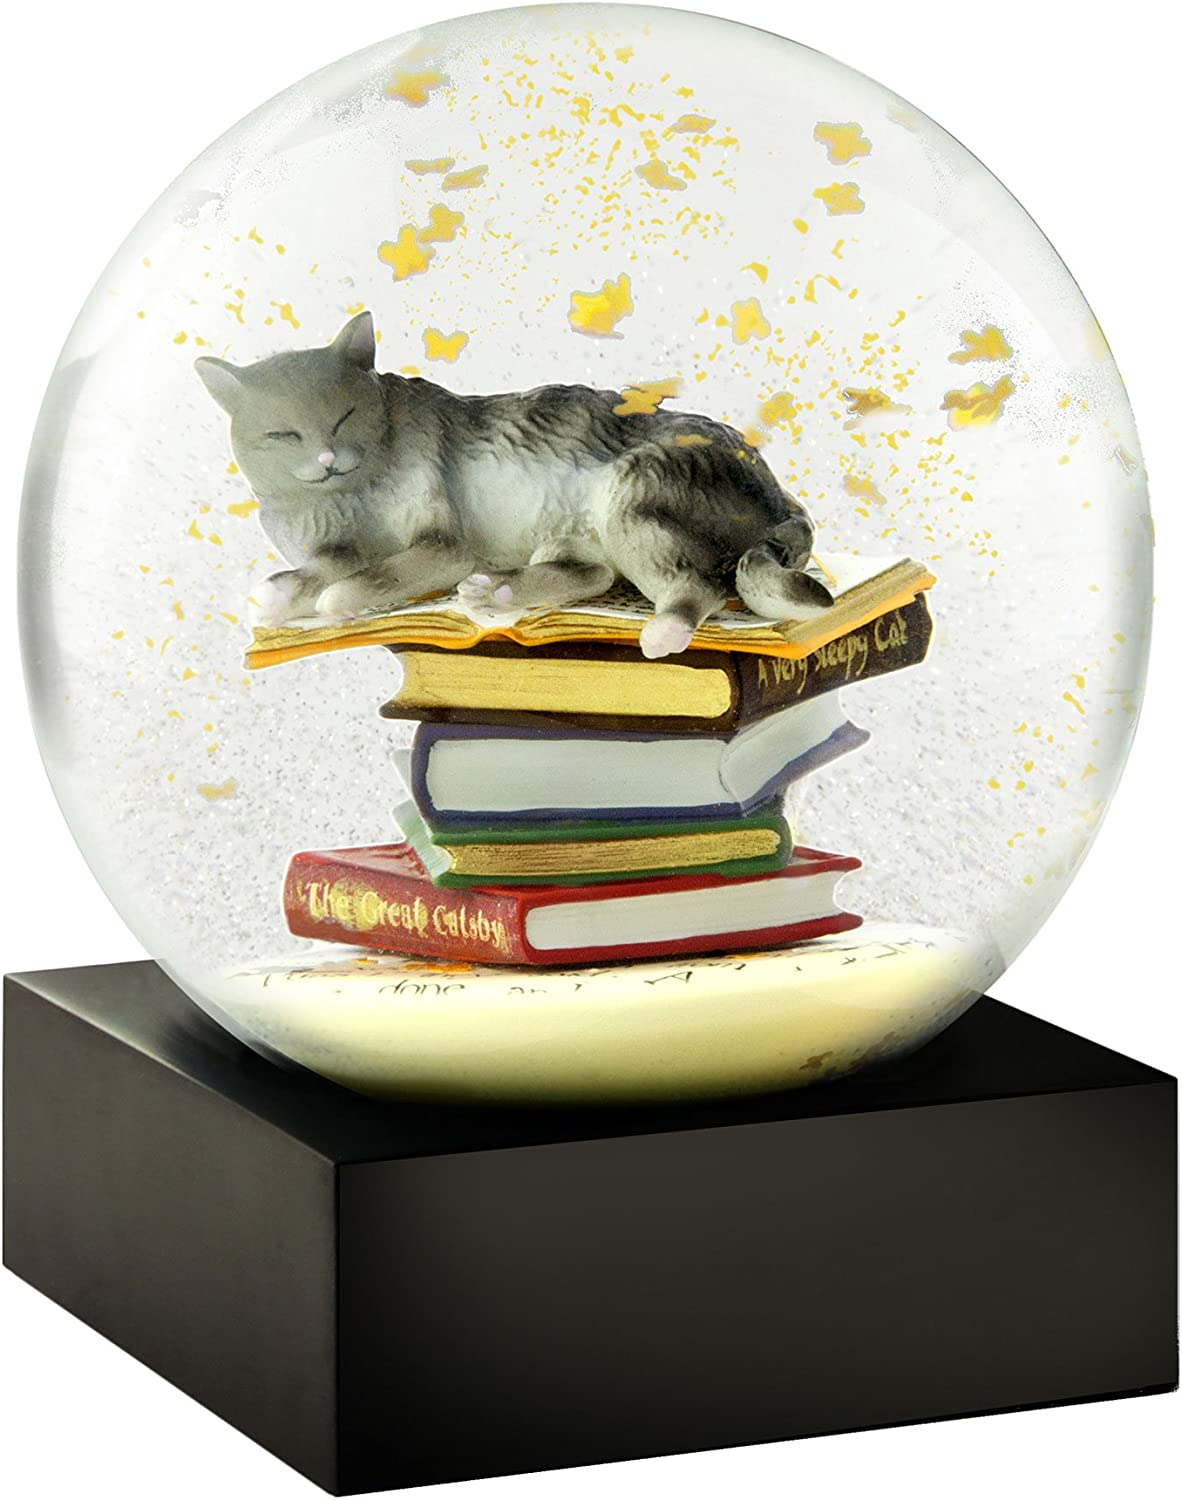 Albuquerque San Diego Mall Mall Cat on Books Snow Globes CoolSnowGlobes by